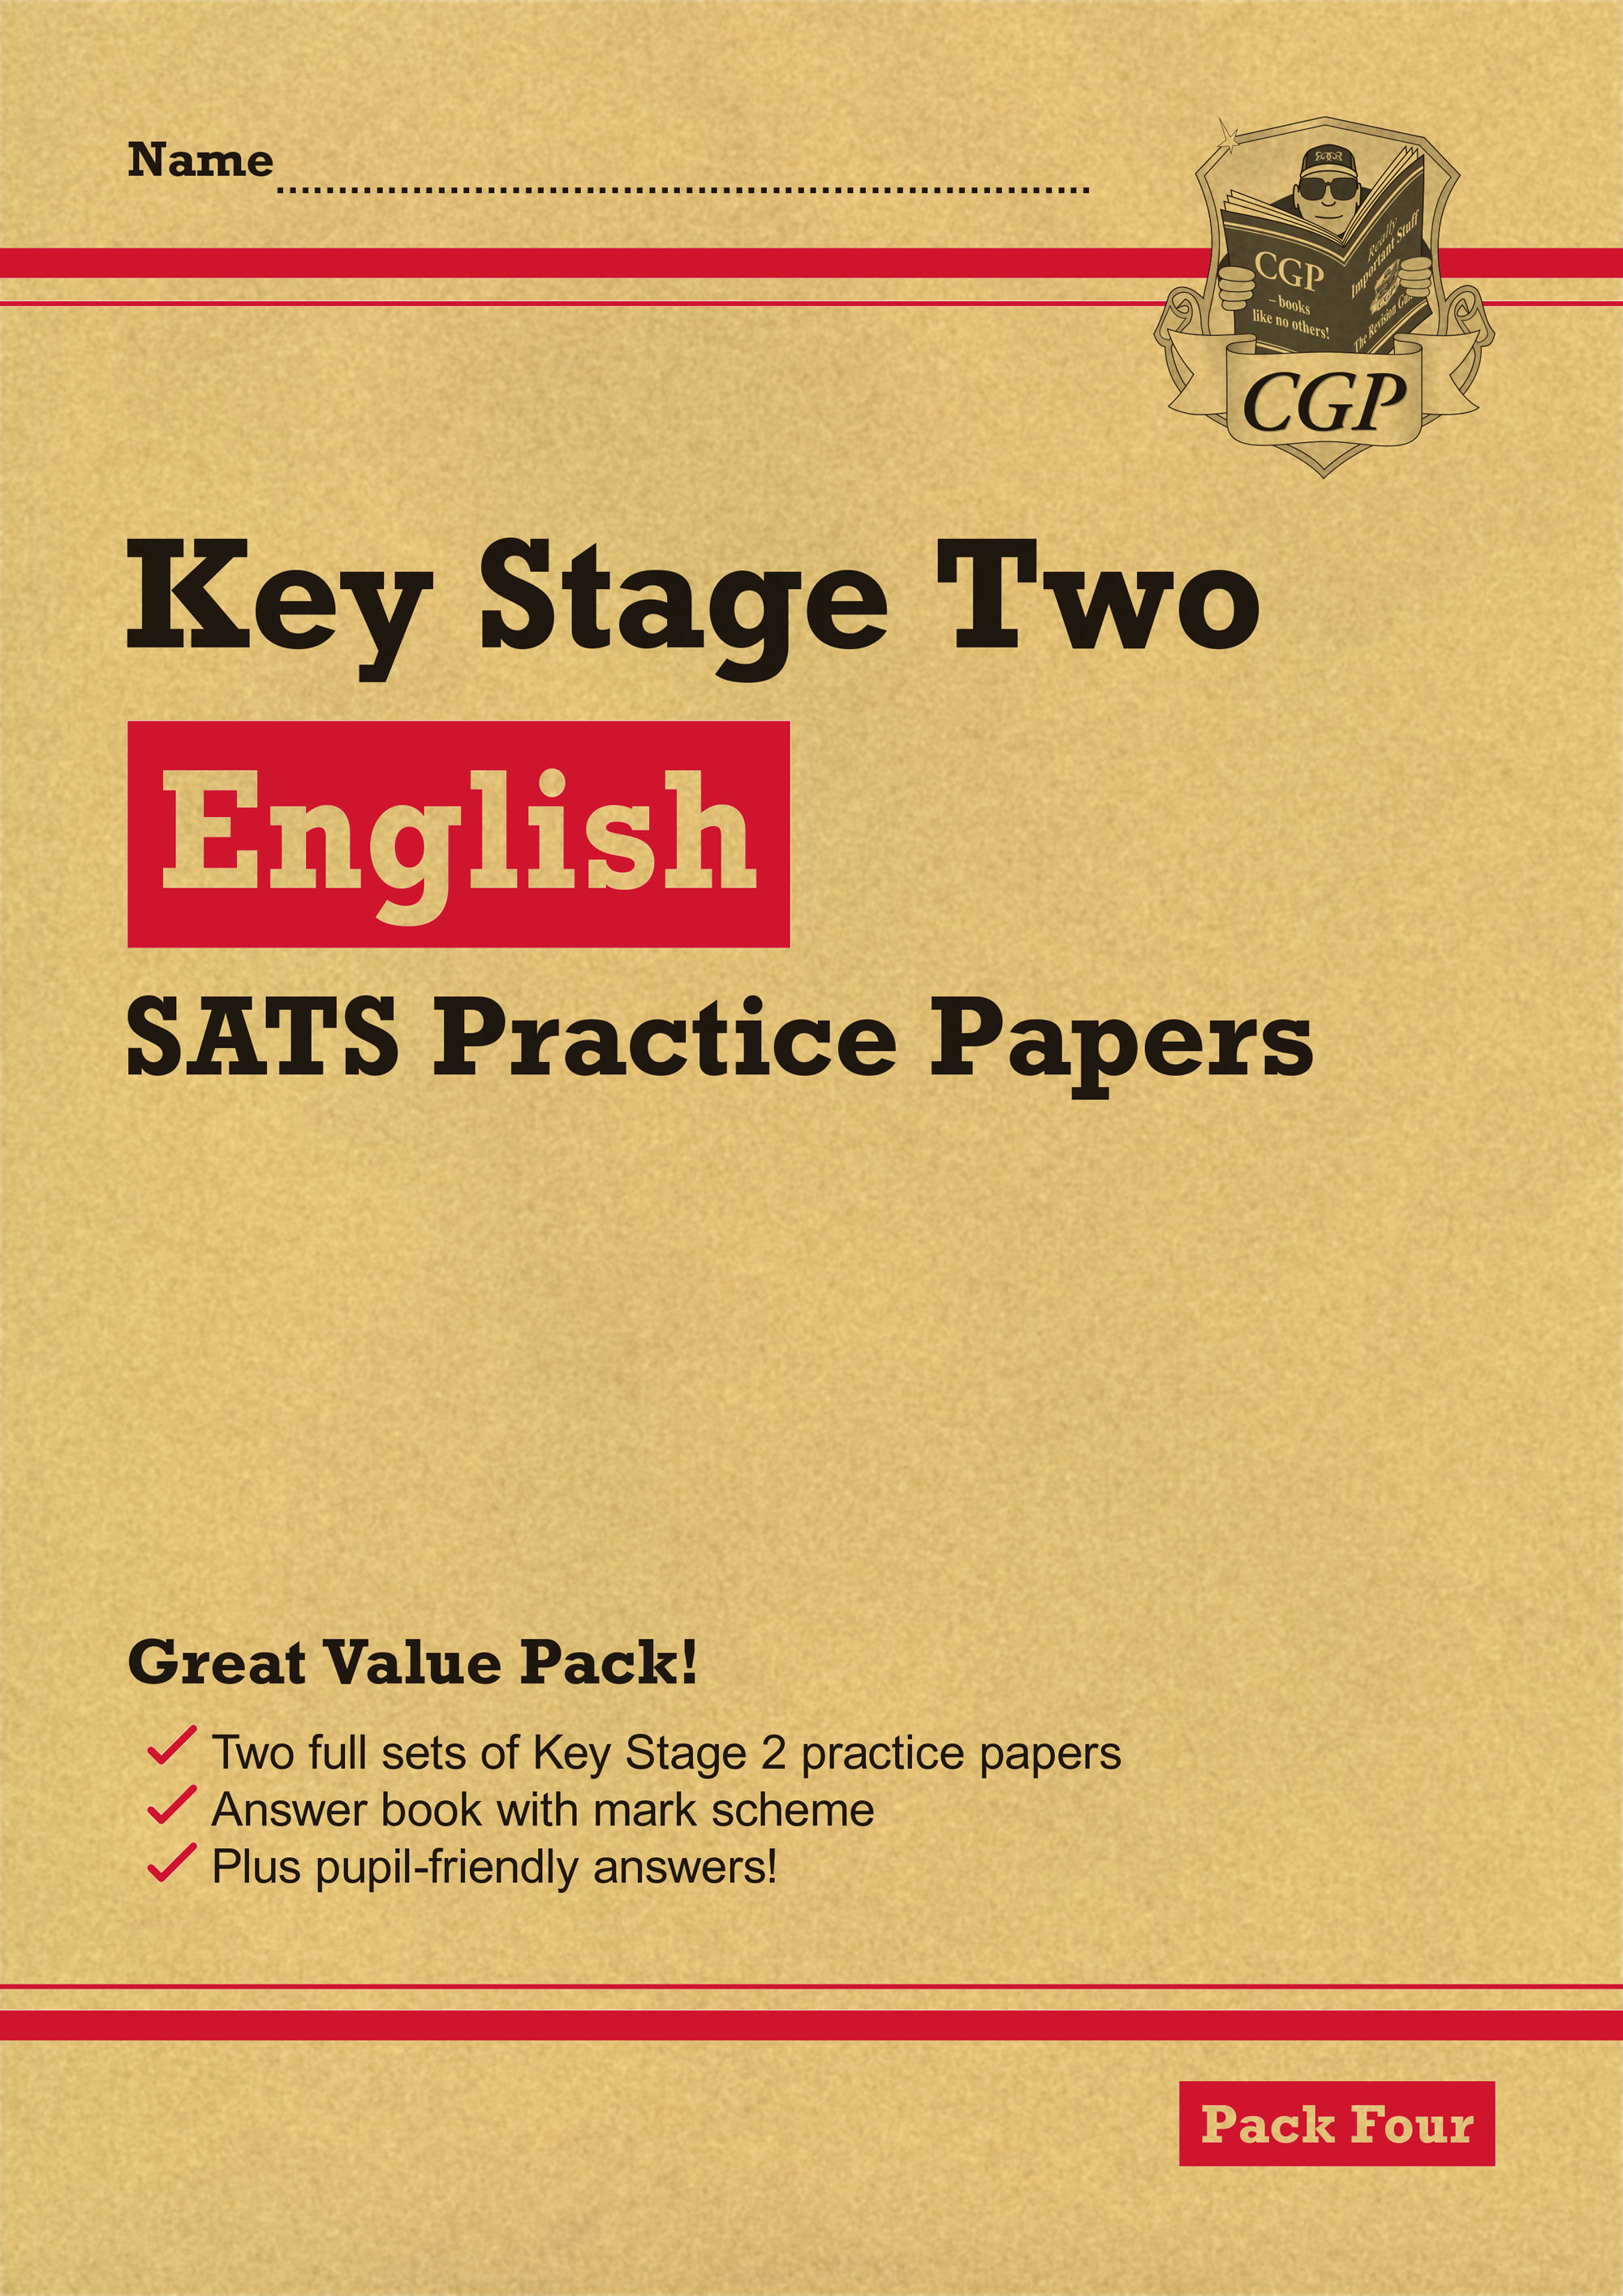 EHRP27 - New KS2 English SATS Practice Papers: Pack 4 (for the 2019 tests)